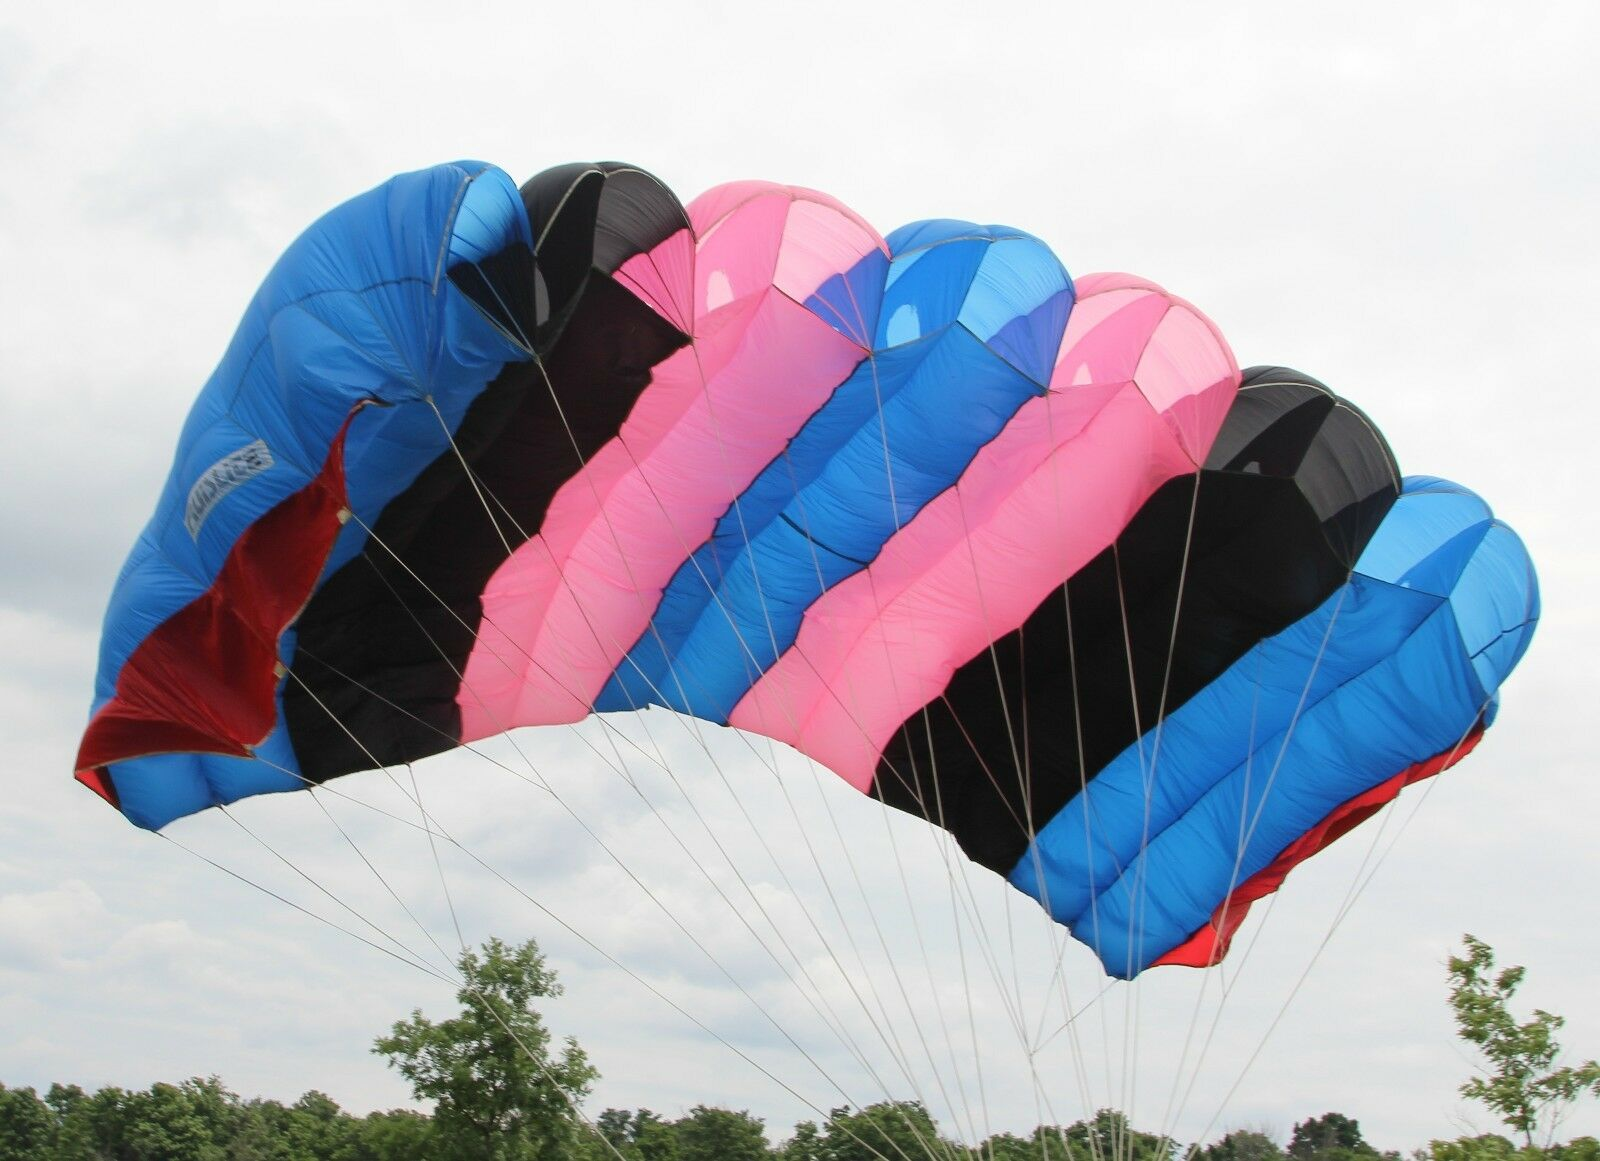 Cruislite XL - 240sq ft skydiving parachute canopy 7 cell F111